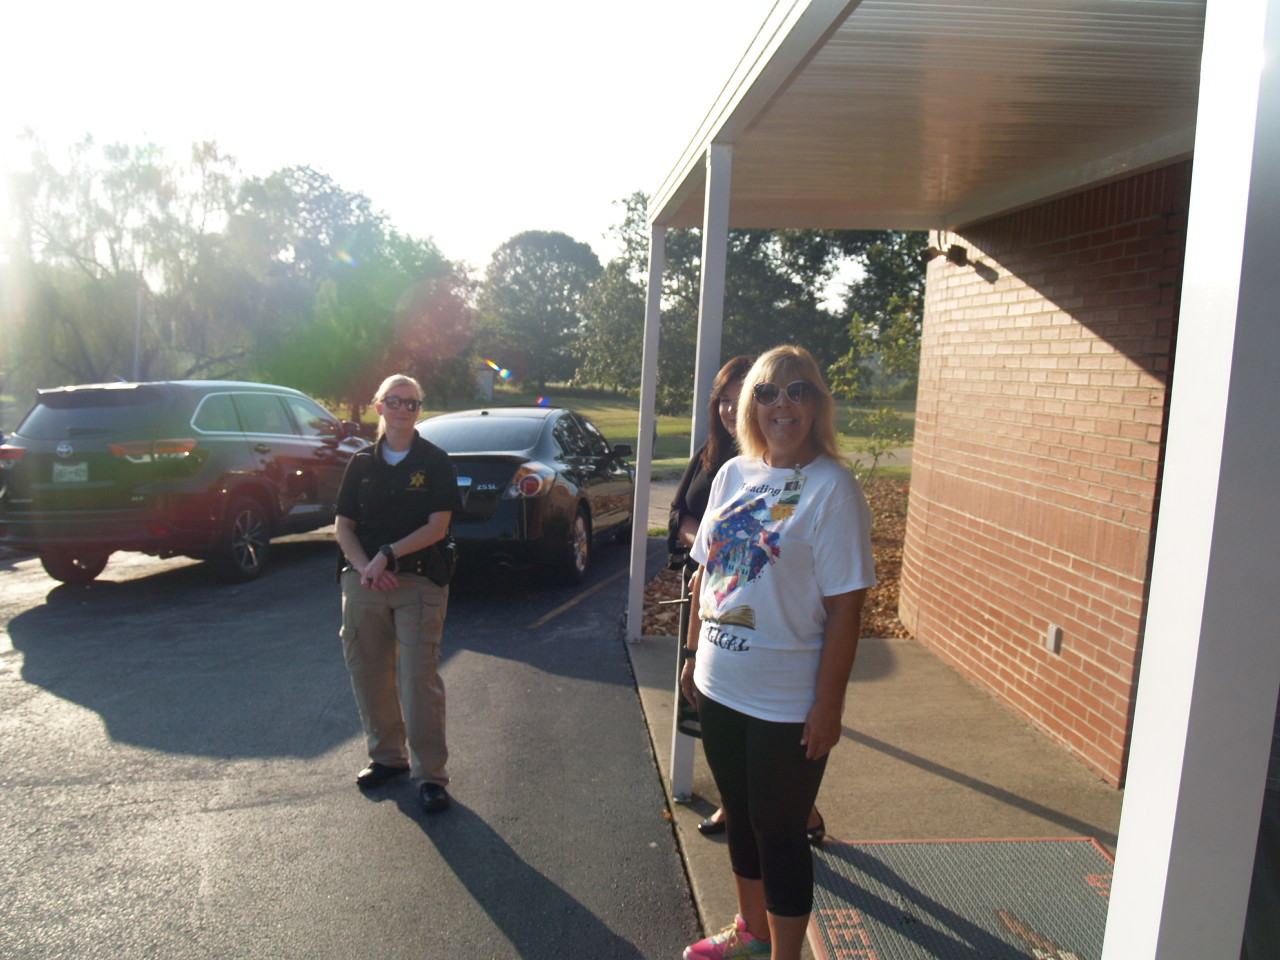 Mrs. Karen and Officer Lauren meet us each morning at UHS